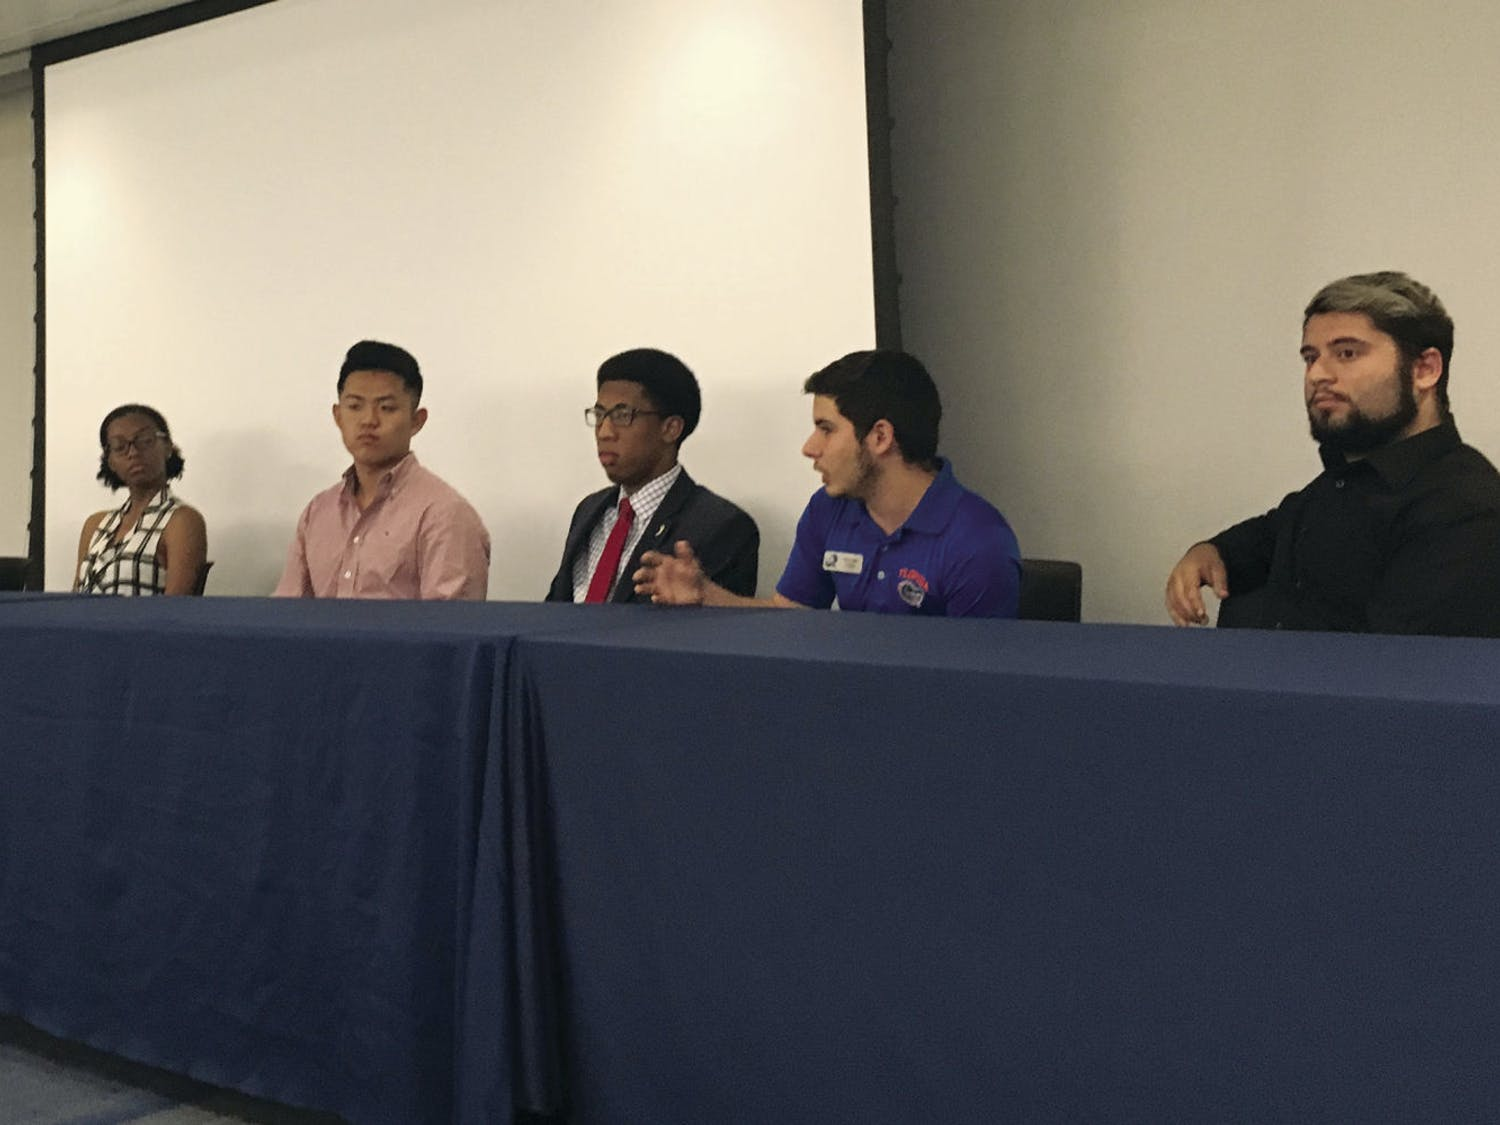 From Left: Analesa Clarke, Ronit Dastidar, Nyasha Joseph, John Kim, Ian Green, Robert Lemus and Alex Chaves discuss mental health in a panel on Tuesday. The event was during the first day of Student Government's annual Mental Health Awareness Week.